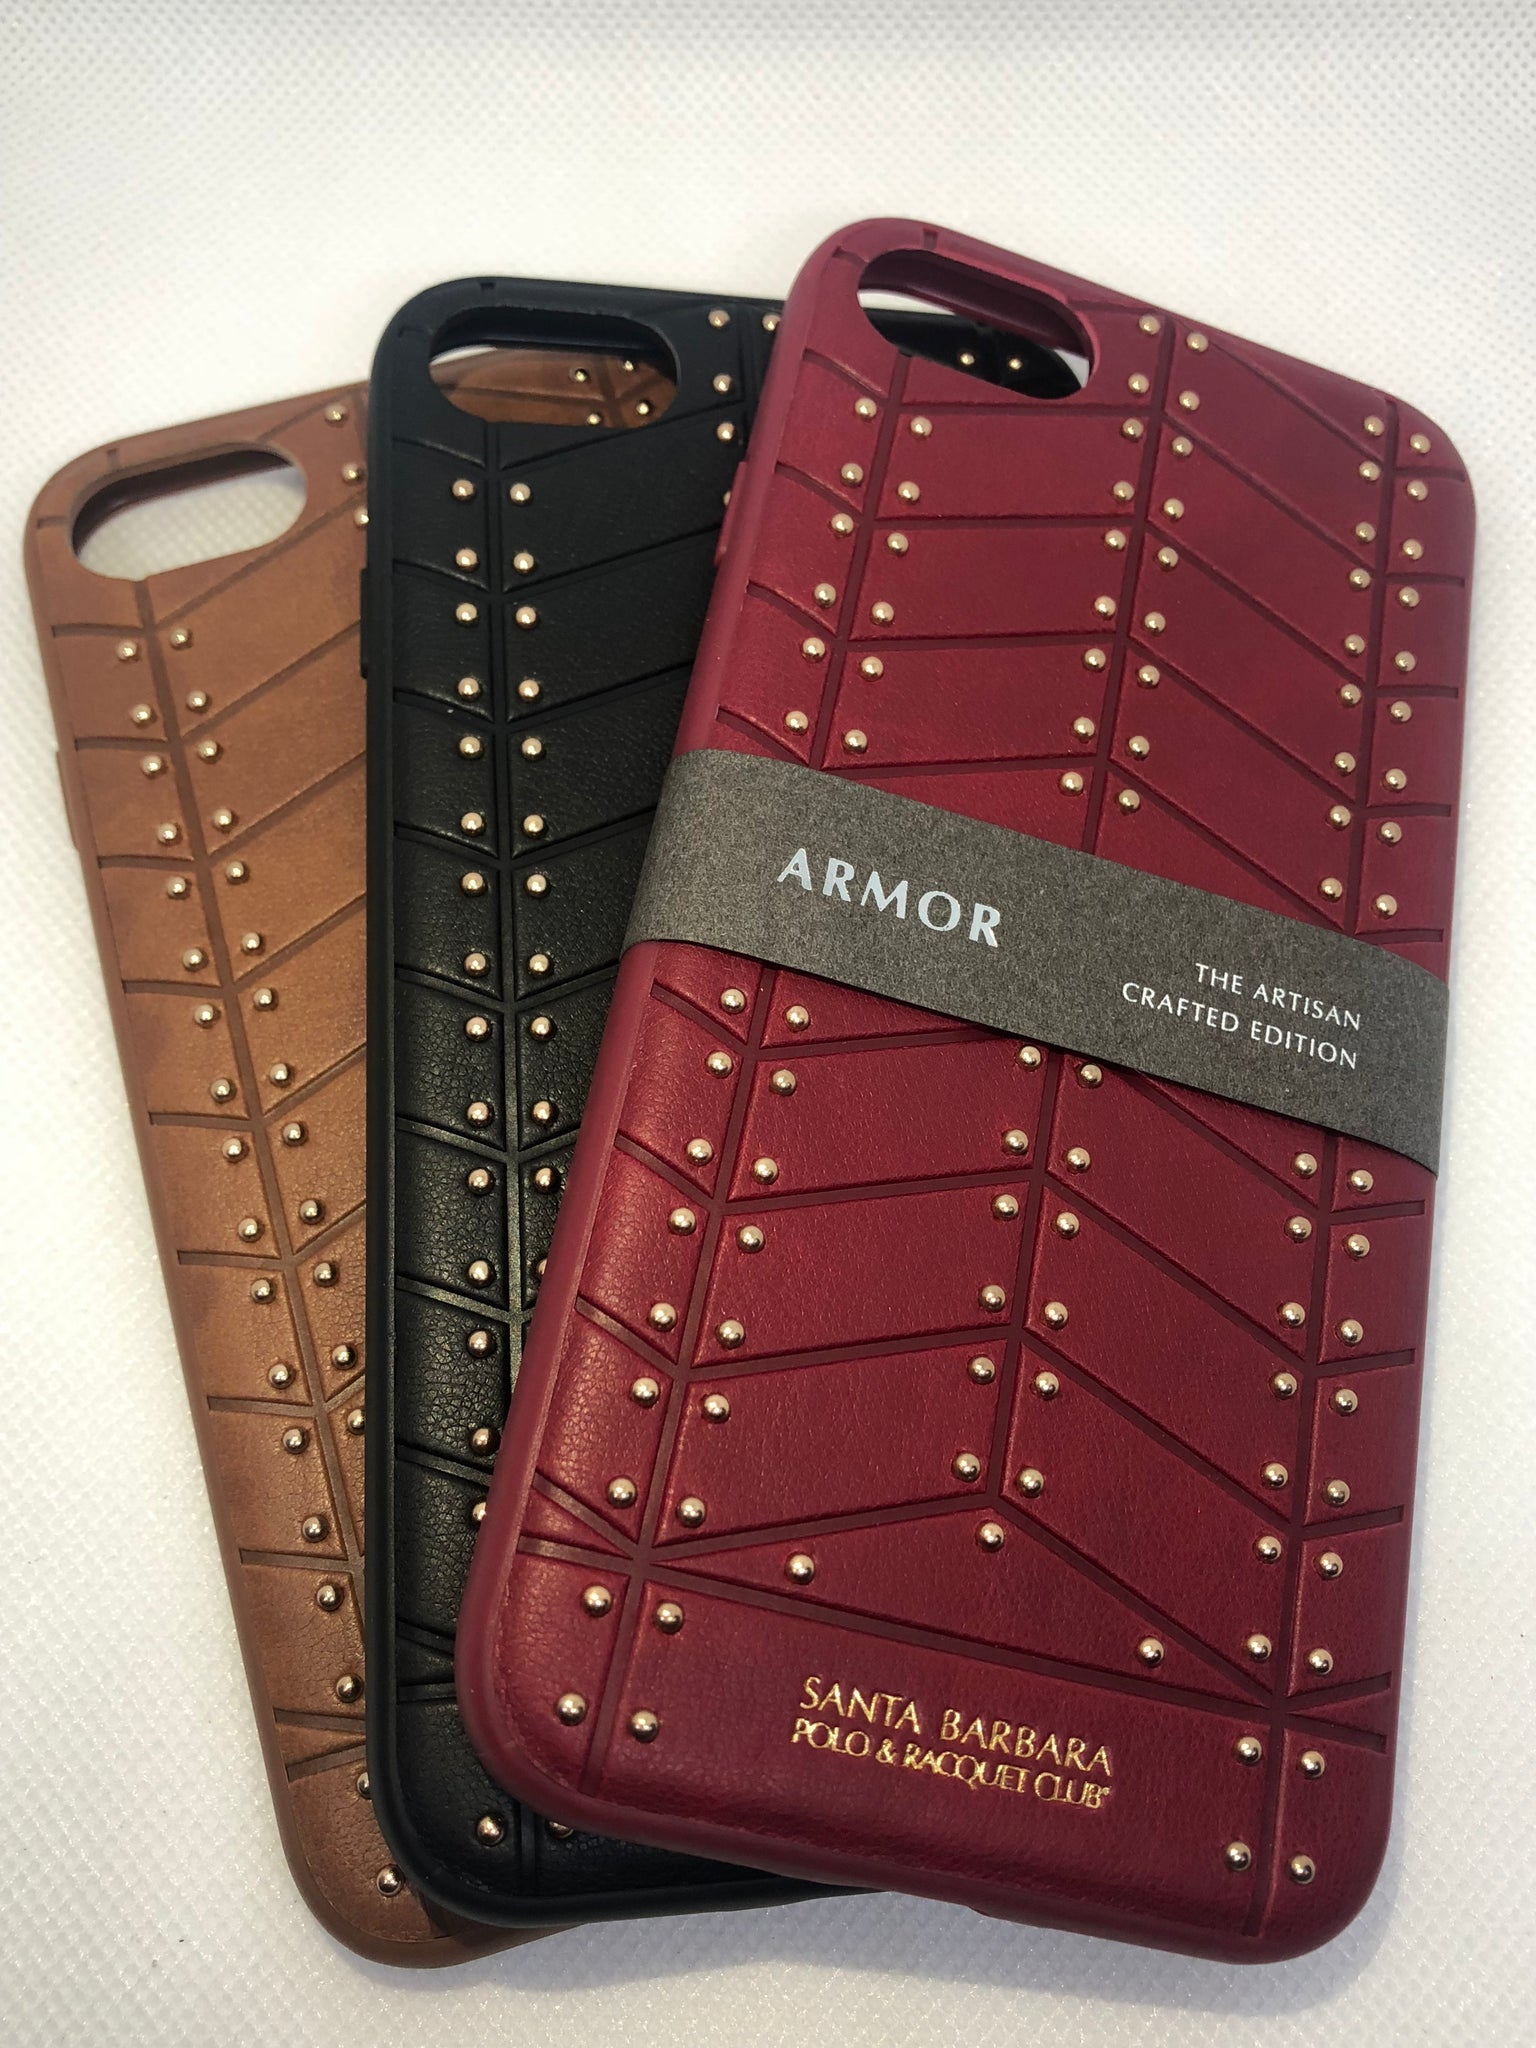 Apple iPhone 7/8 100% Original Santa Barbara Armor Luxurious Leather Case